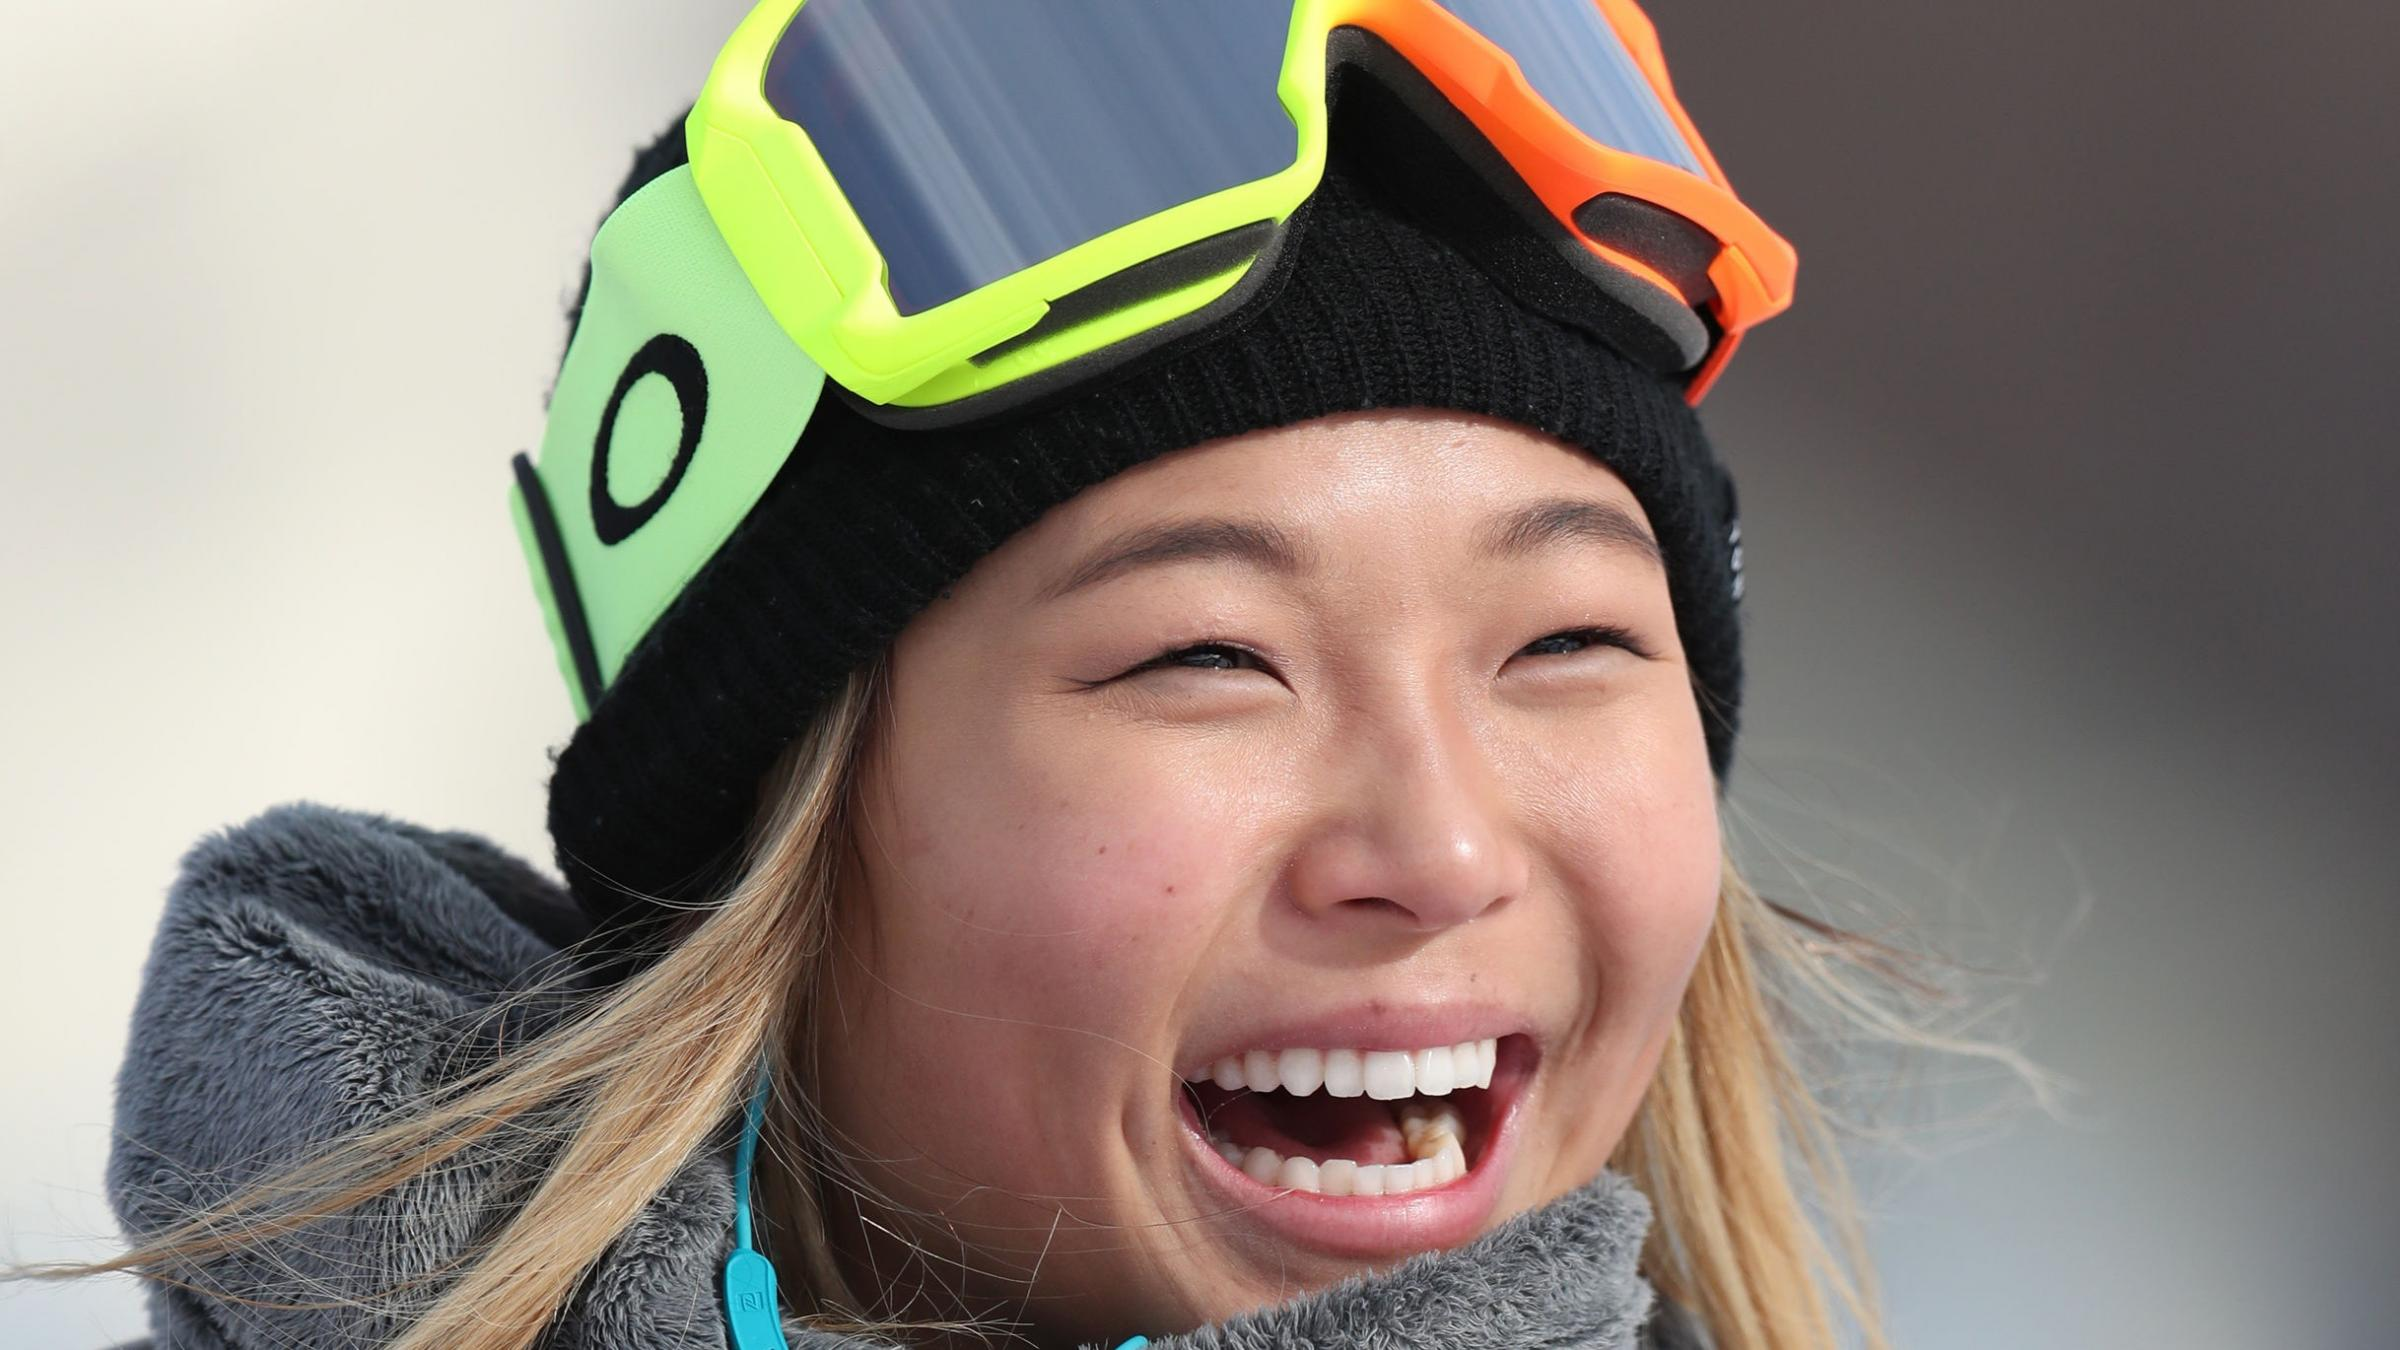 Near-perfect performance lands gold for snowboard prodigy Chloe Kim